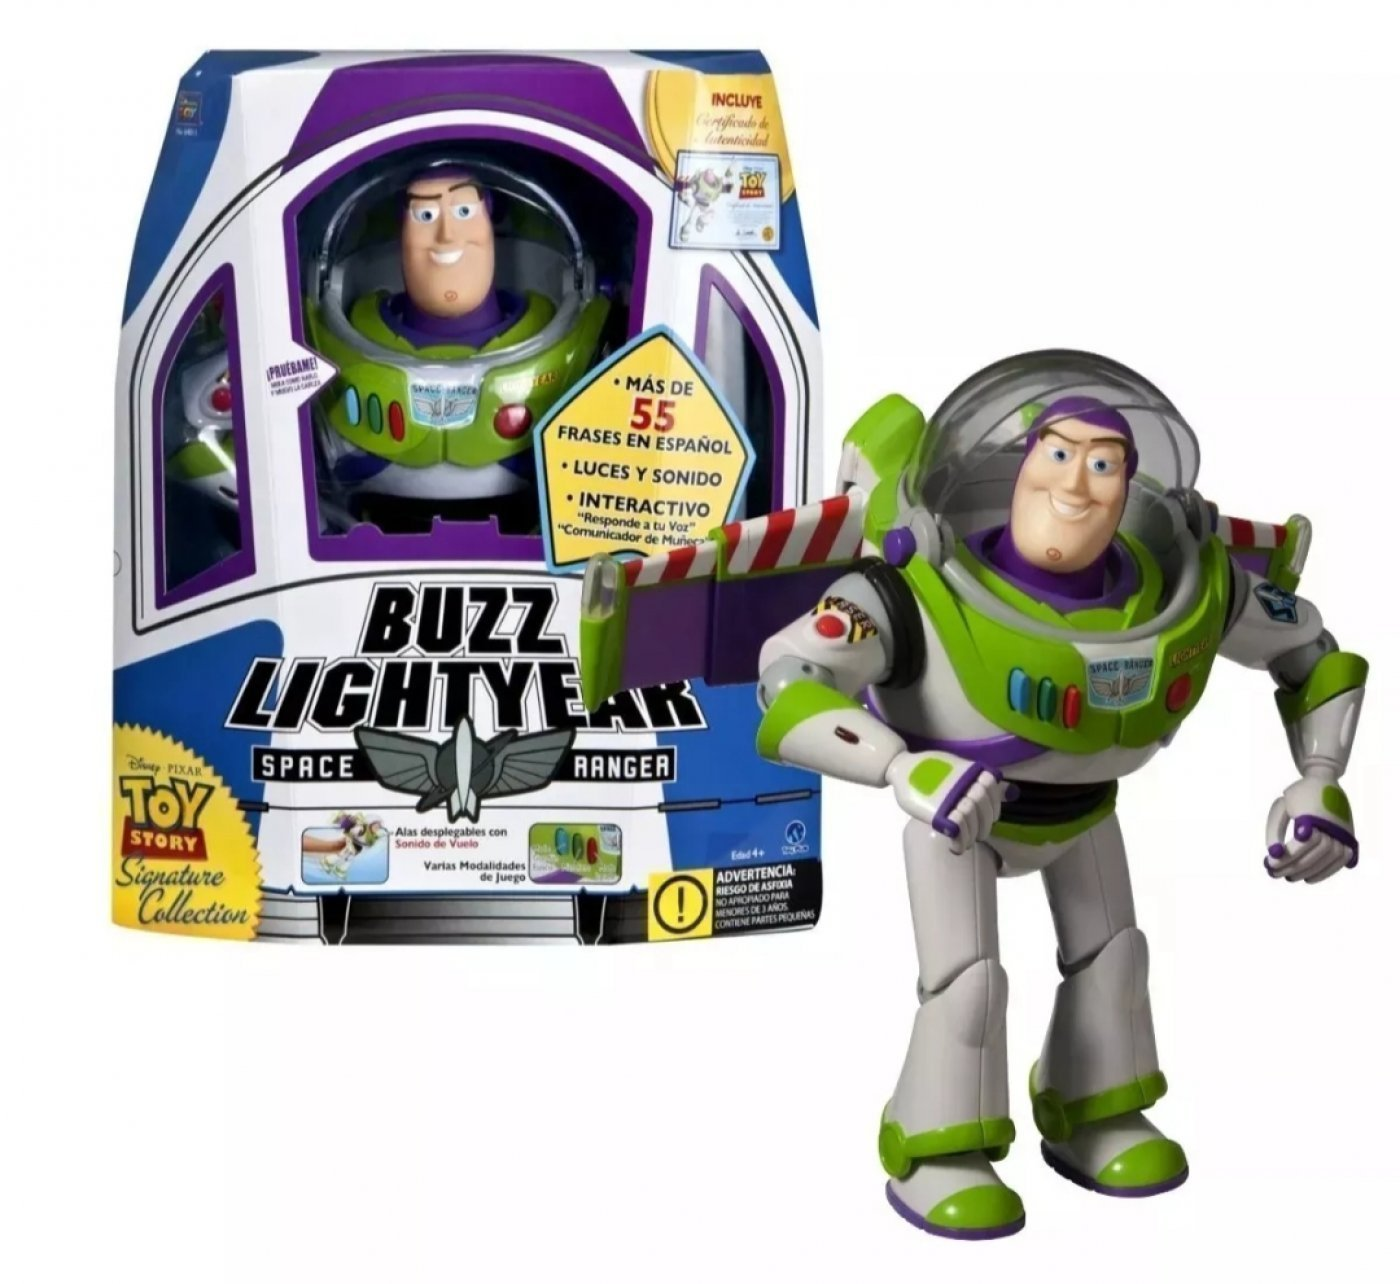 Buzz Interactivo Signature Collection Toy Story, Habla  55 Frases!